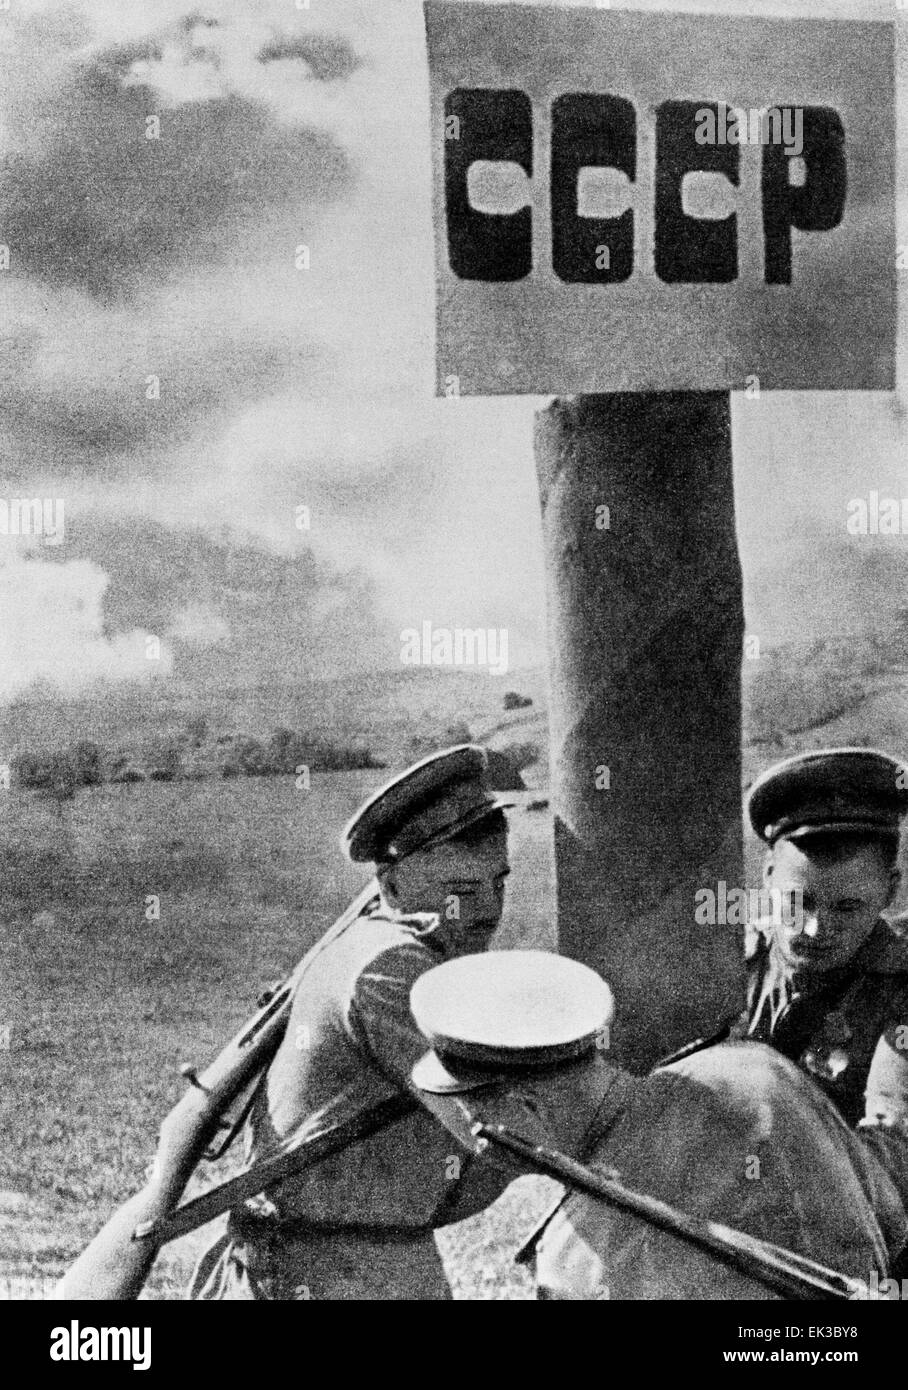 Russian soldiers reerect a marker on the state border of the USSR. Repro photo - Stock Image